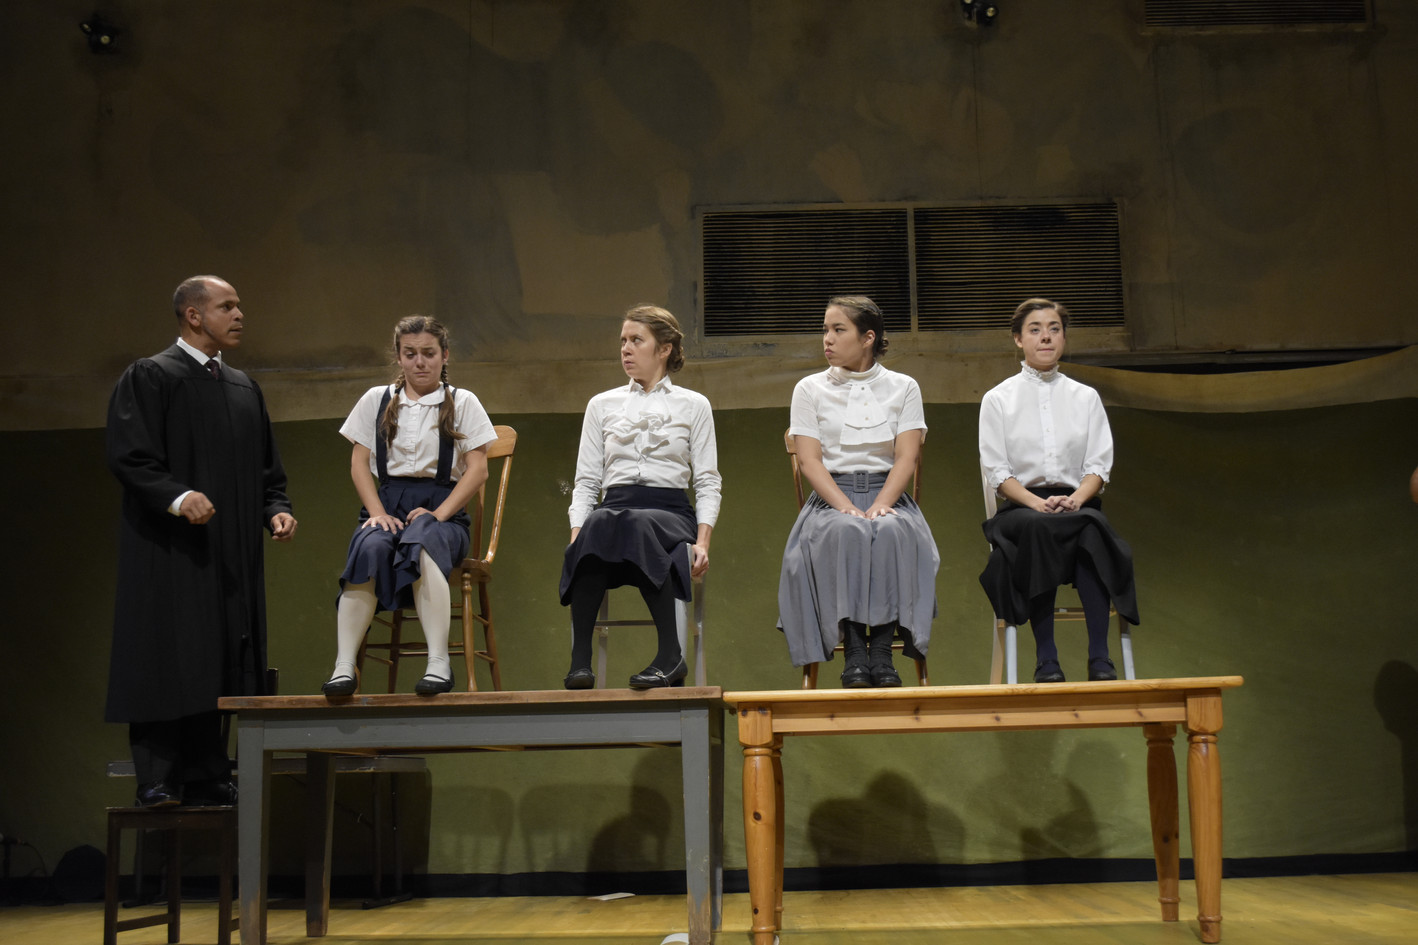 The Crucible: BEDLAM and The Nora Theatre Company, Cambridge, MA  (photo: Niles Scott Studios)